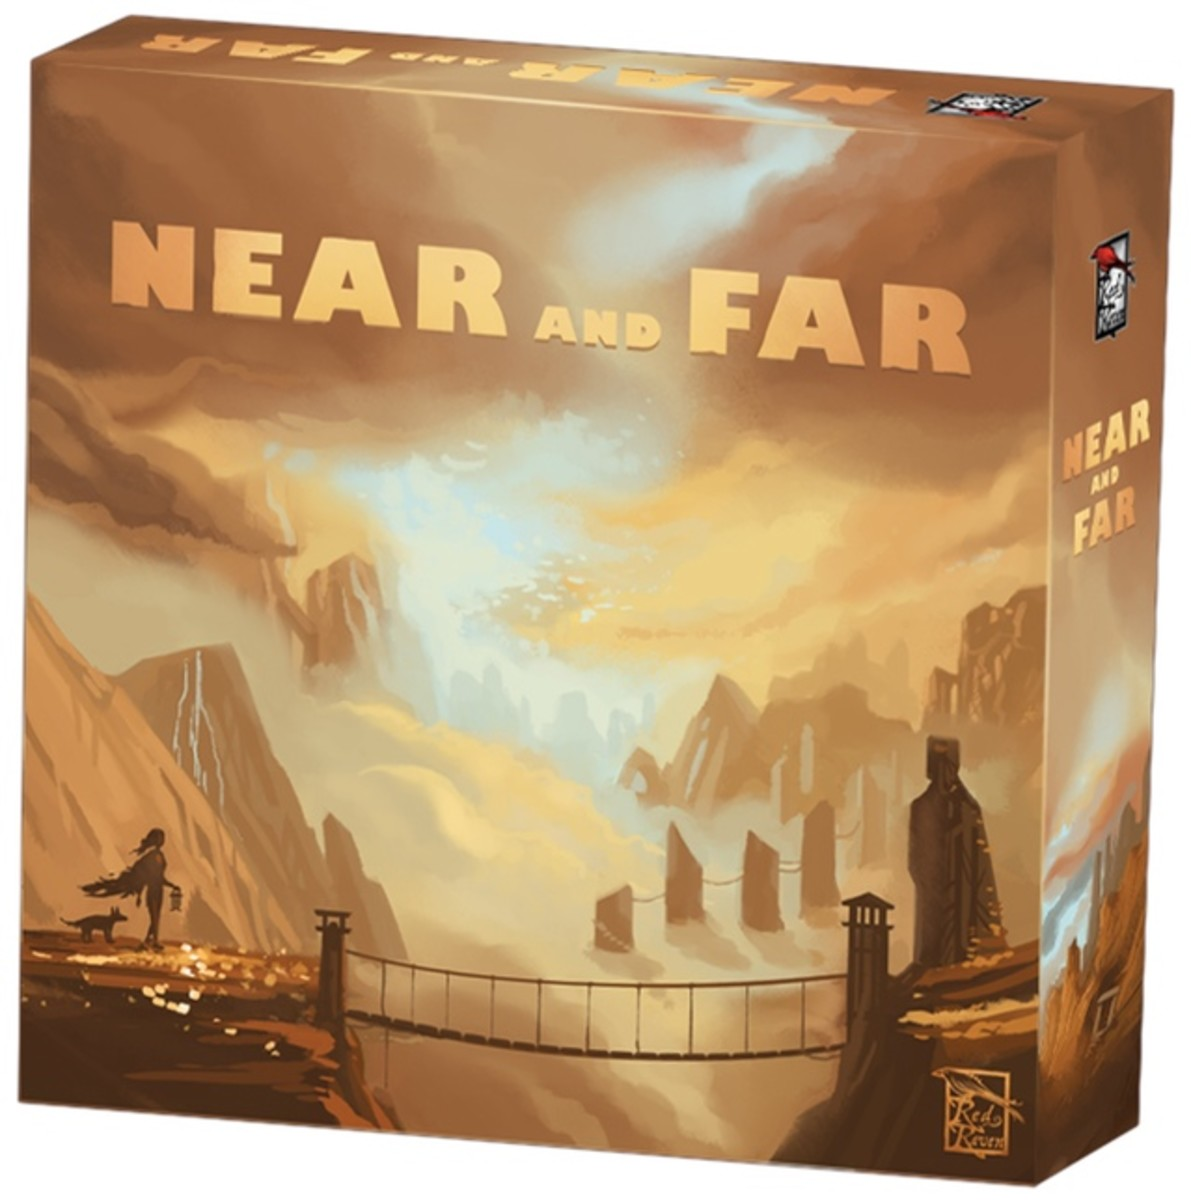 Near and Far by Red Raven games